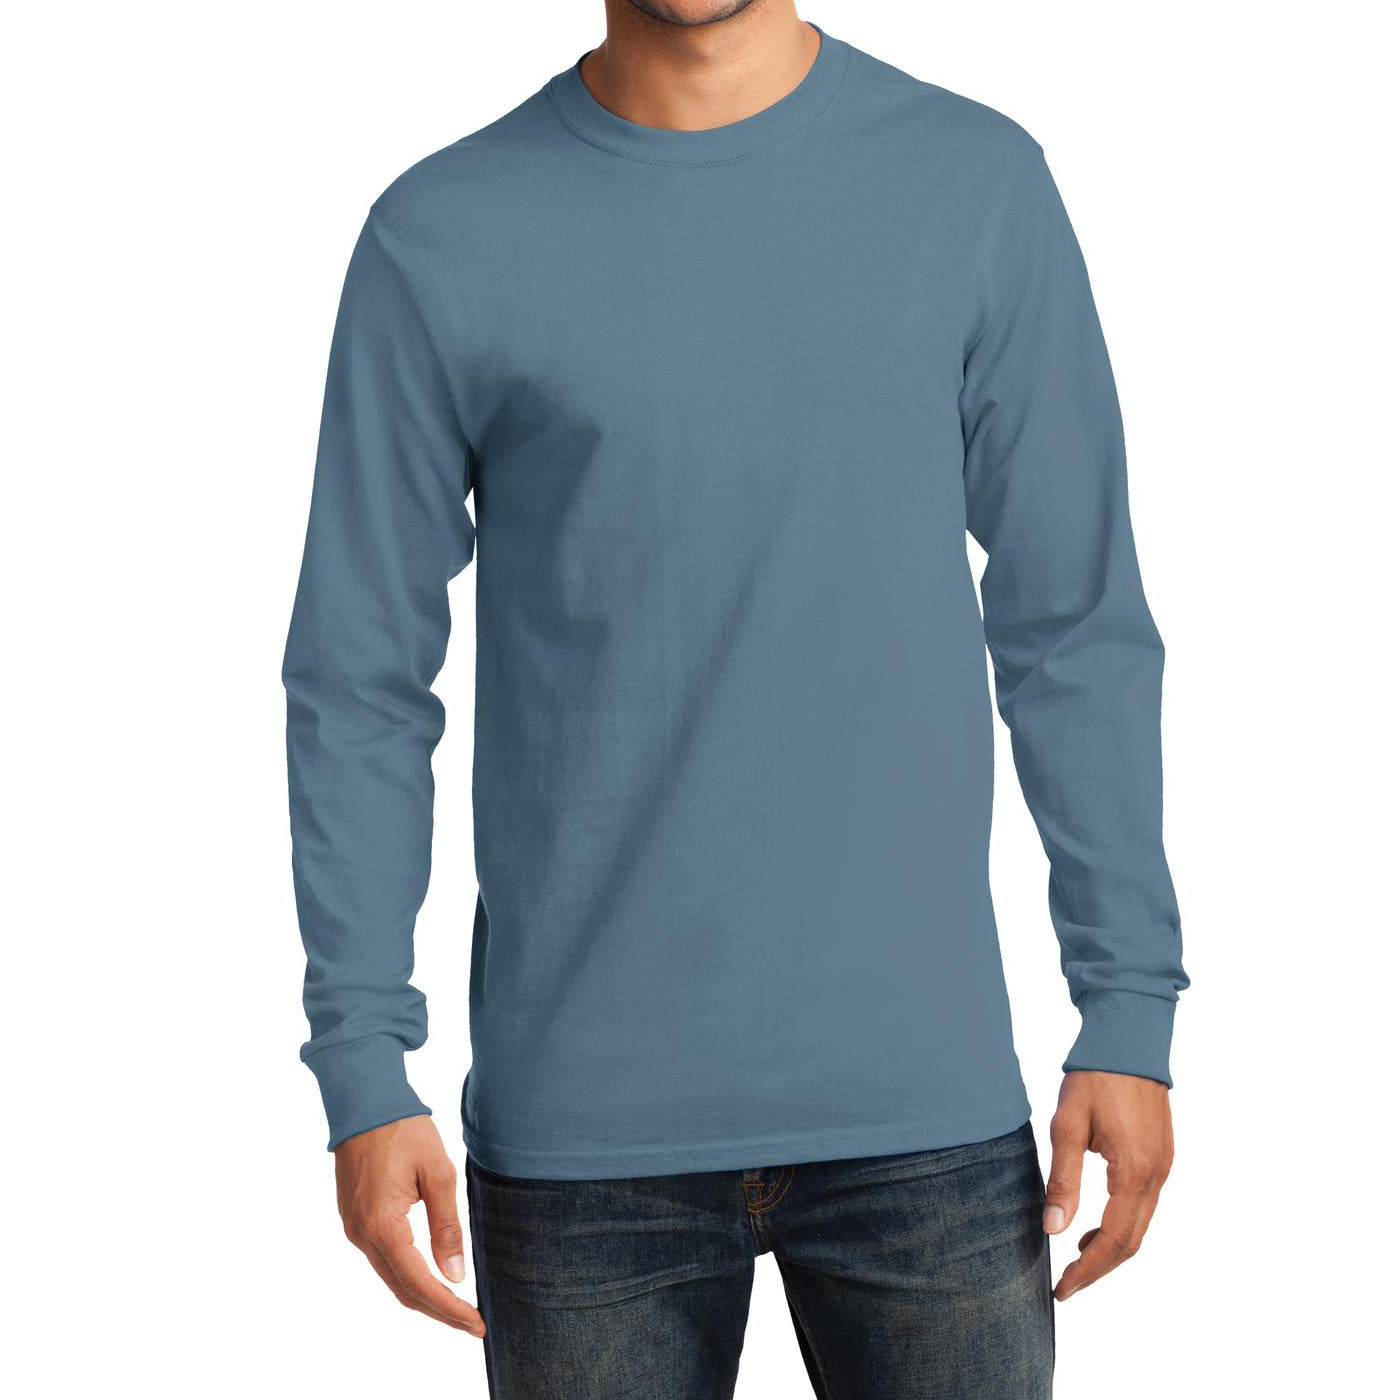 Men's Long Sleeve Essential Tee - Stonewashed Blue - Front